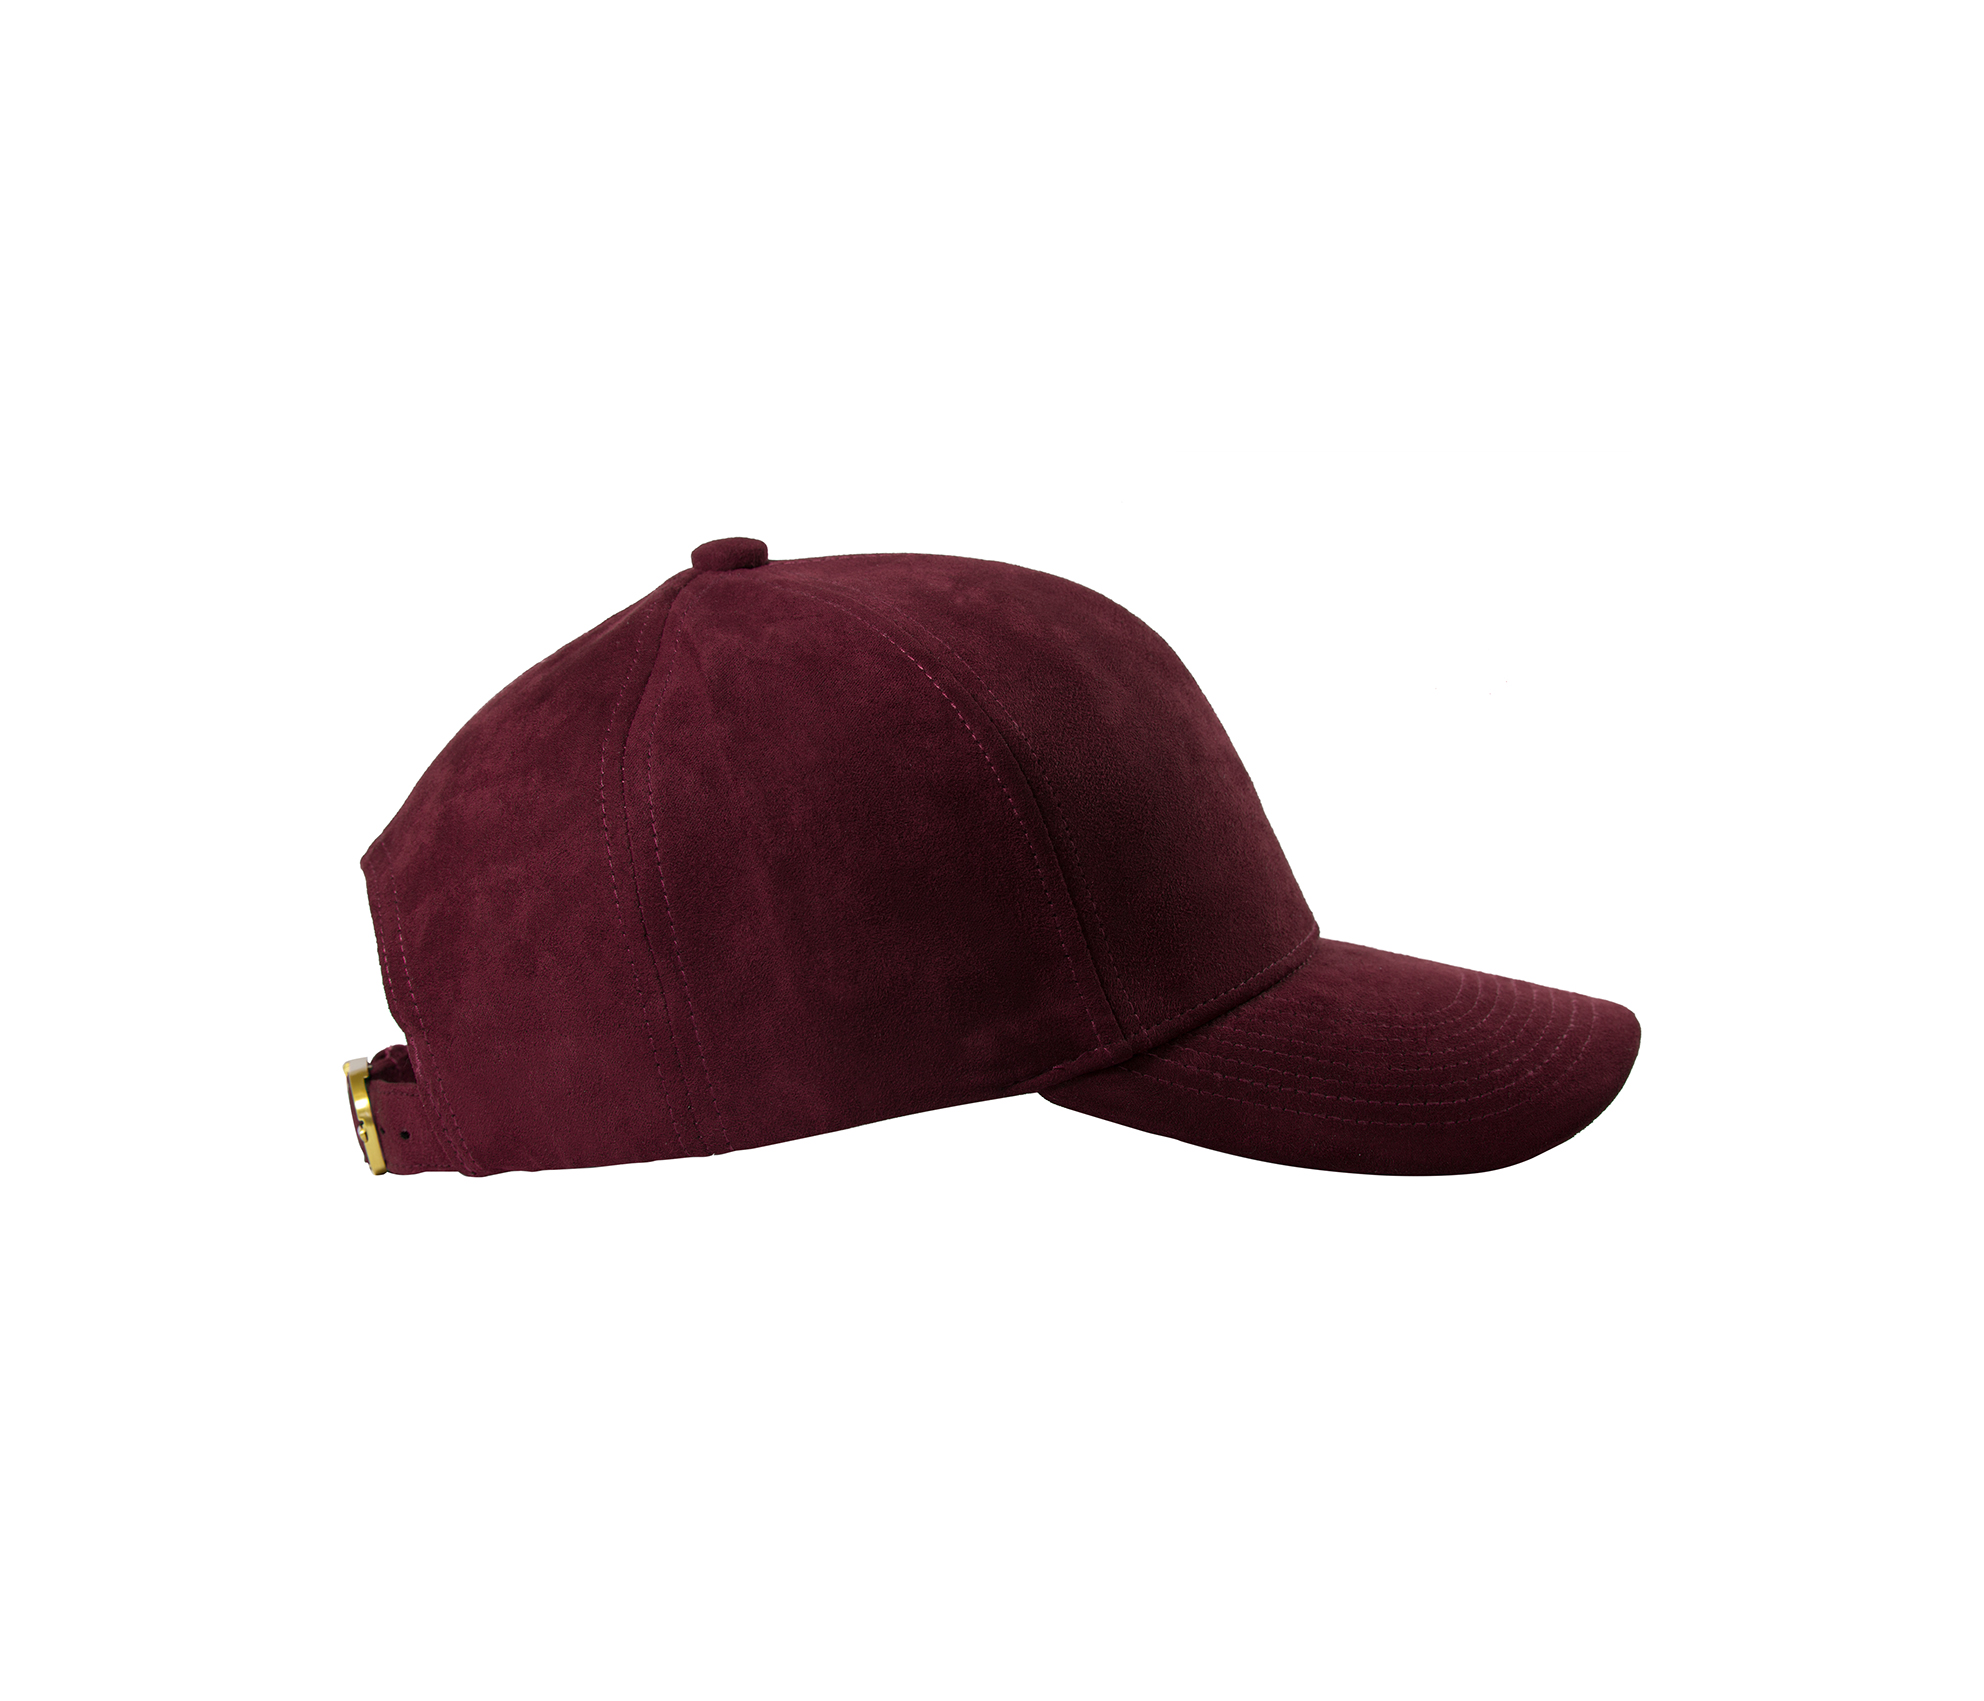 BASEBALL CAP BORDEAUX GOLD SUEDE SIDE